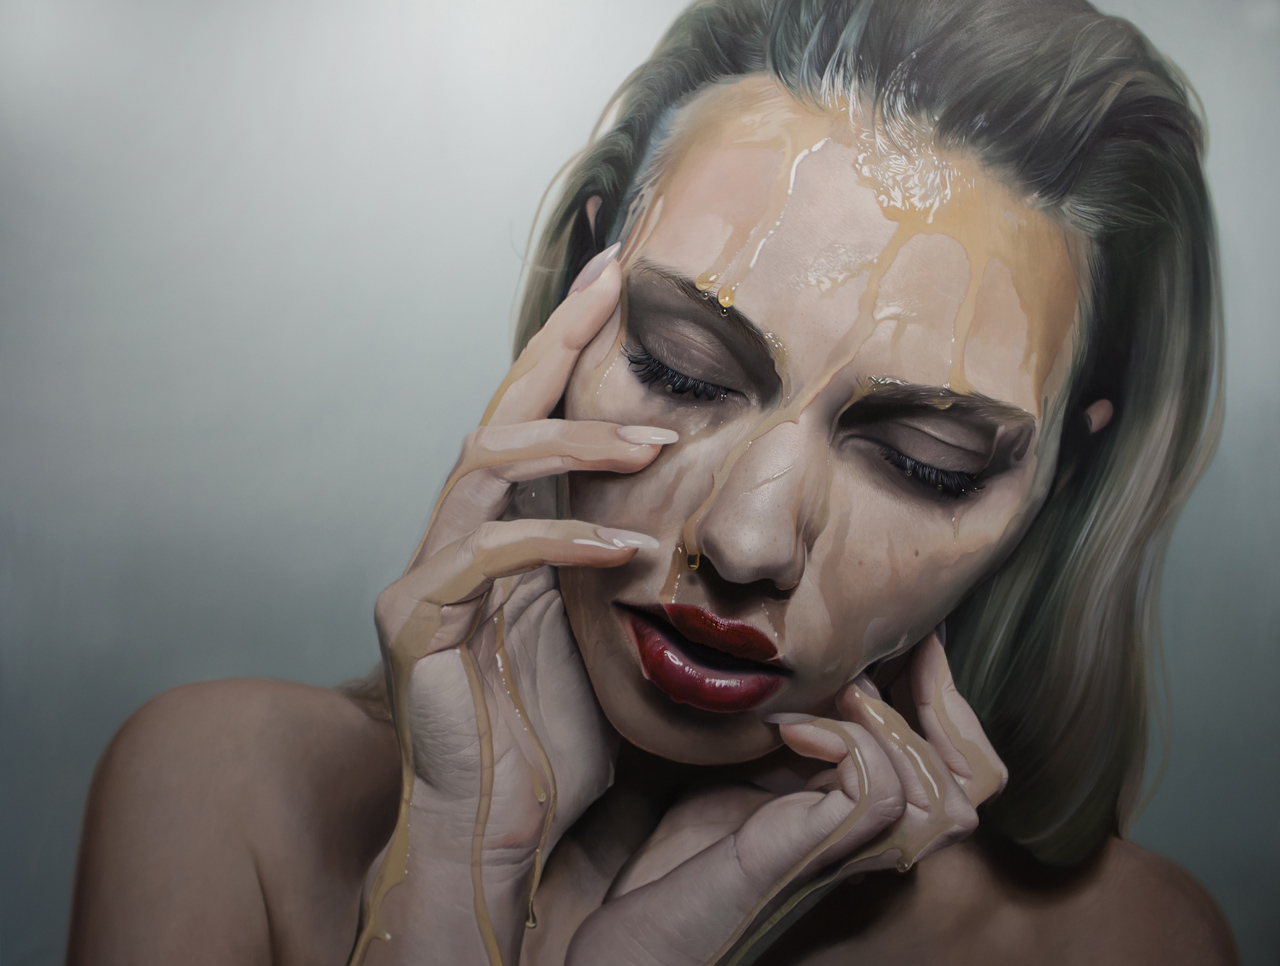 sticky-hyperrealism-portraits-by-mike-dargas-updated-3